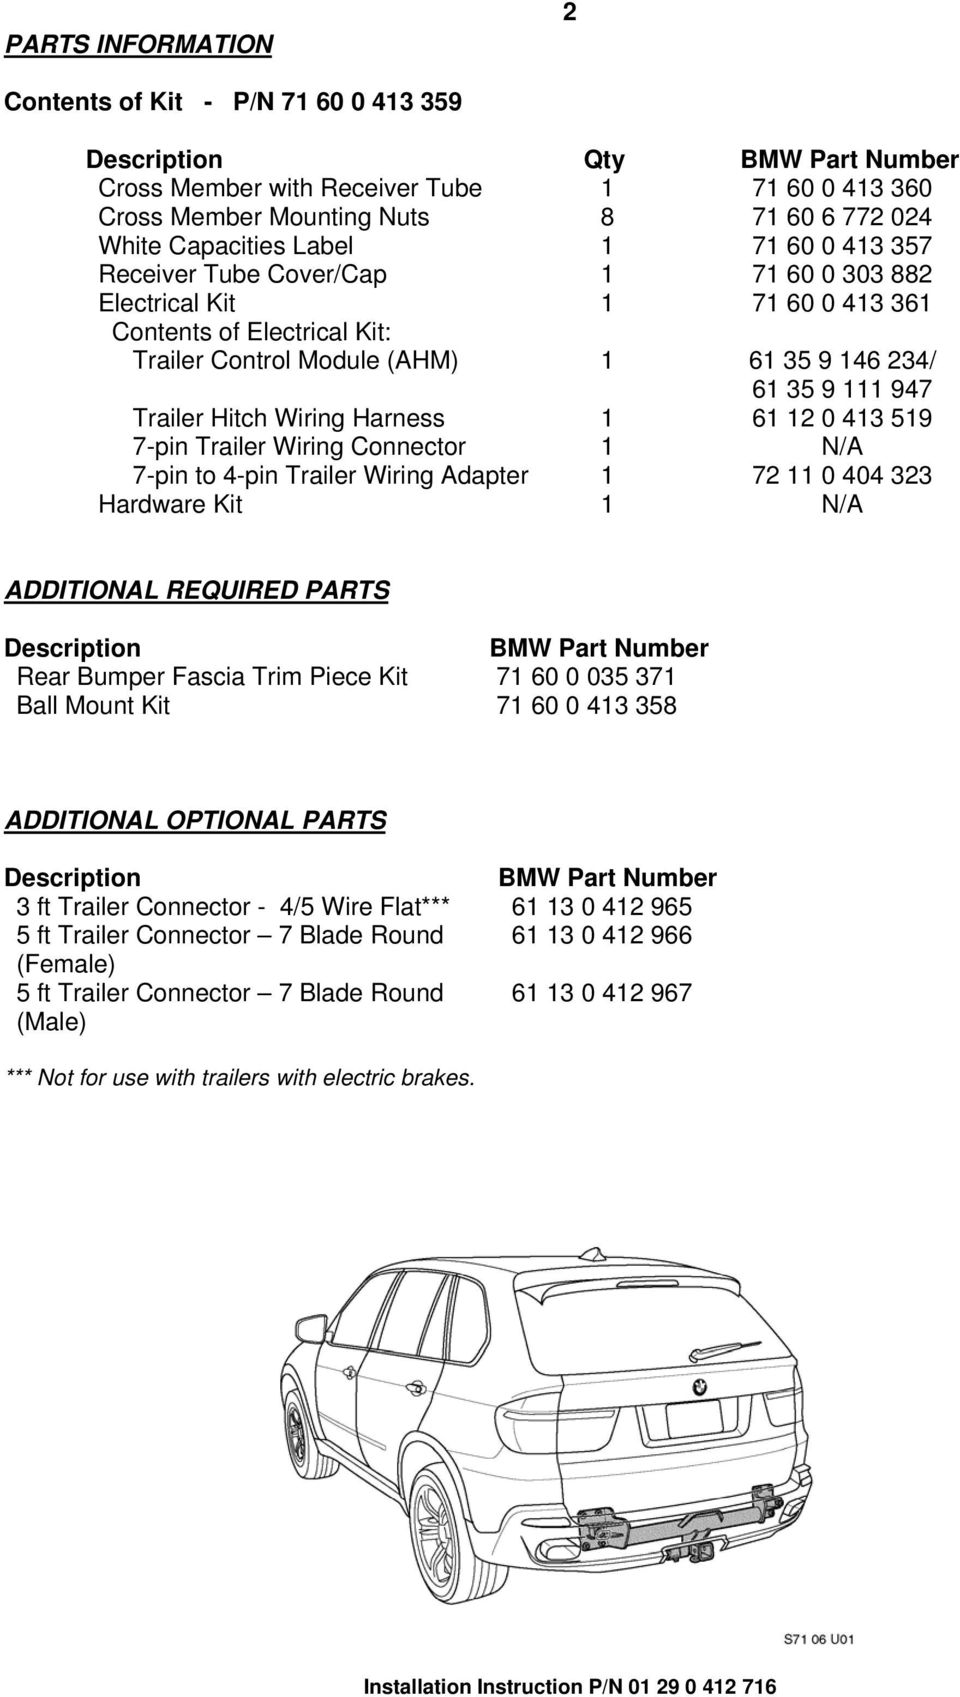 Installation Instructions Pdf Trailer Wiring Harness Kit Includes Two Harnesses Run Brake 947 Hitch 1 61 12 0 413 519 7 Pin